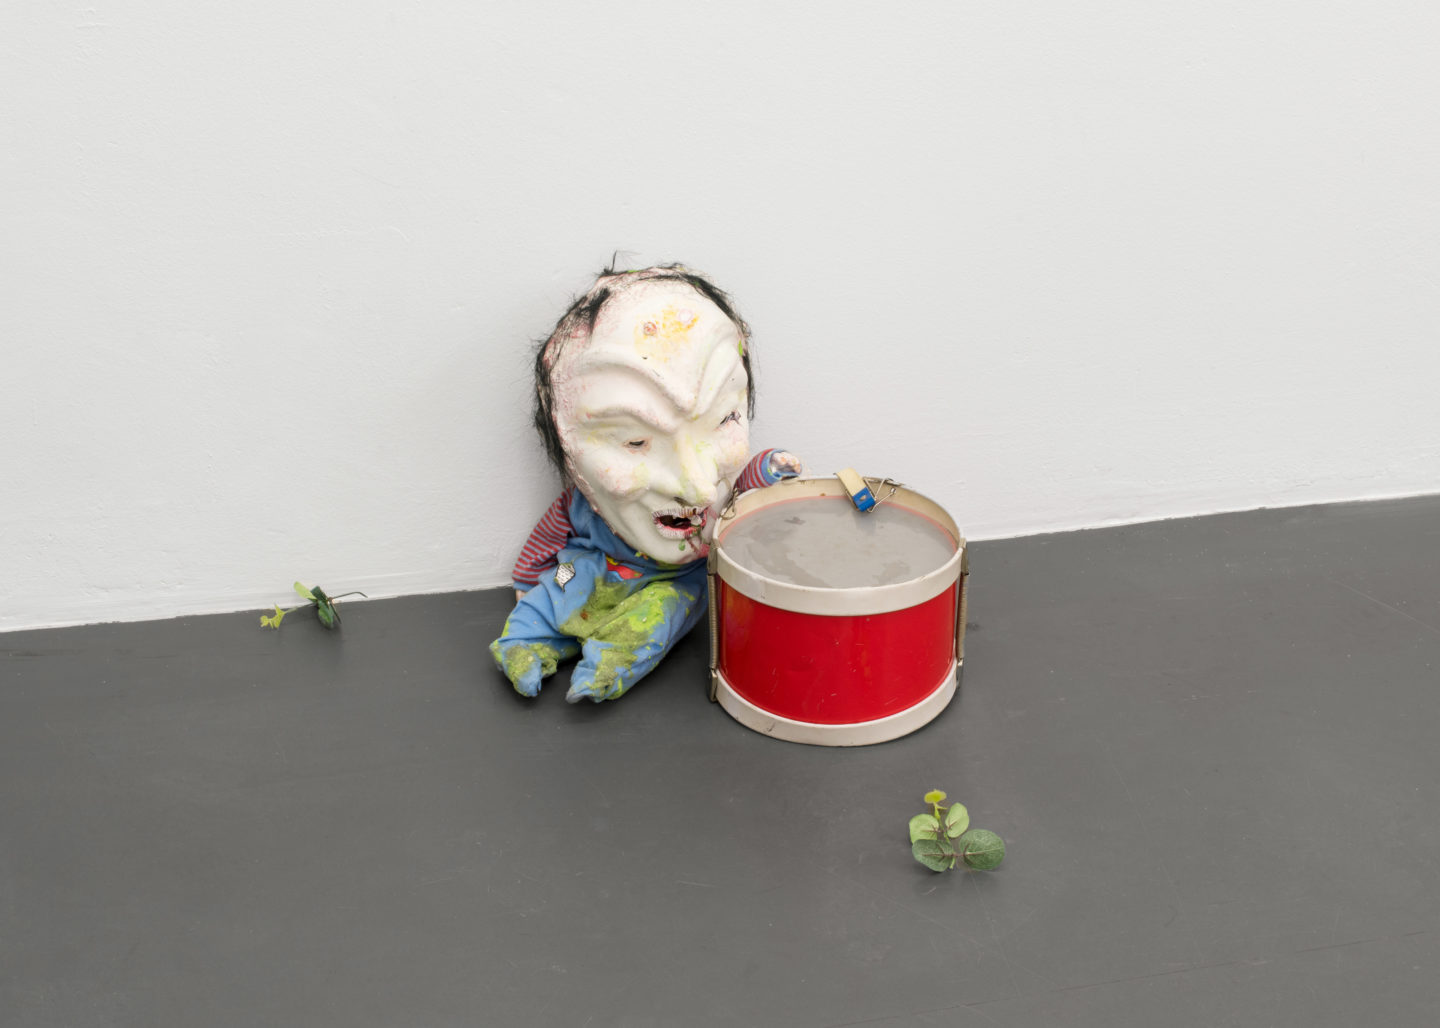 """Exhibition View Veit Laurent Kurz """"Aspects of Arriving"""" at Weiss Falk / Courtesy: Weiss Falk and the artist"""